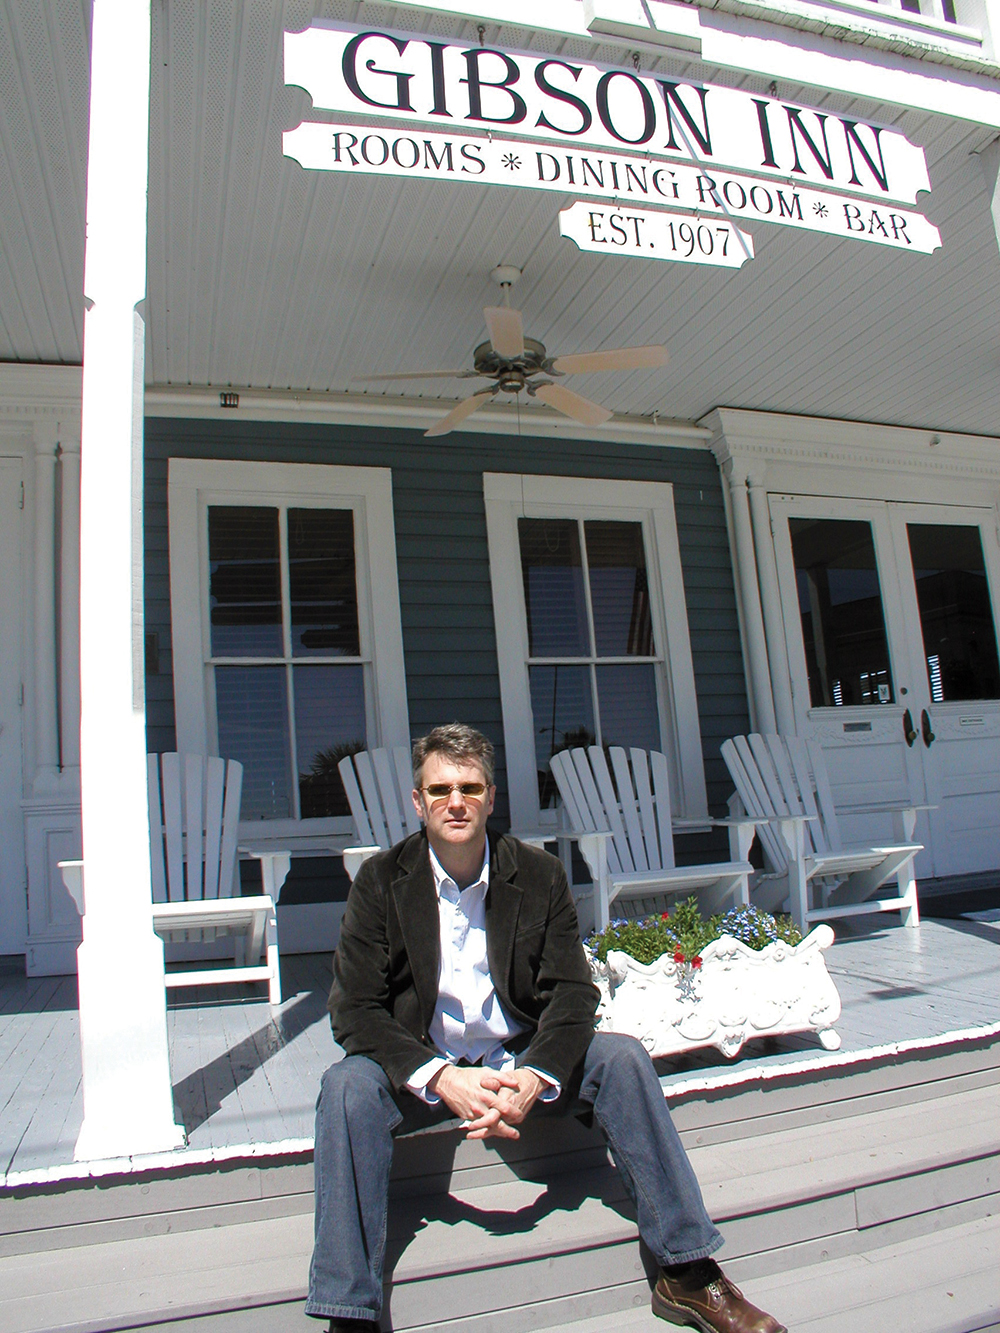 Jerry in Apalachicola